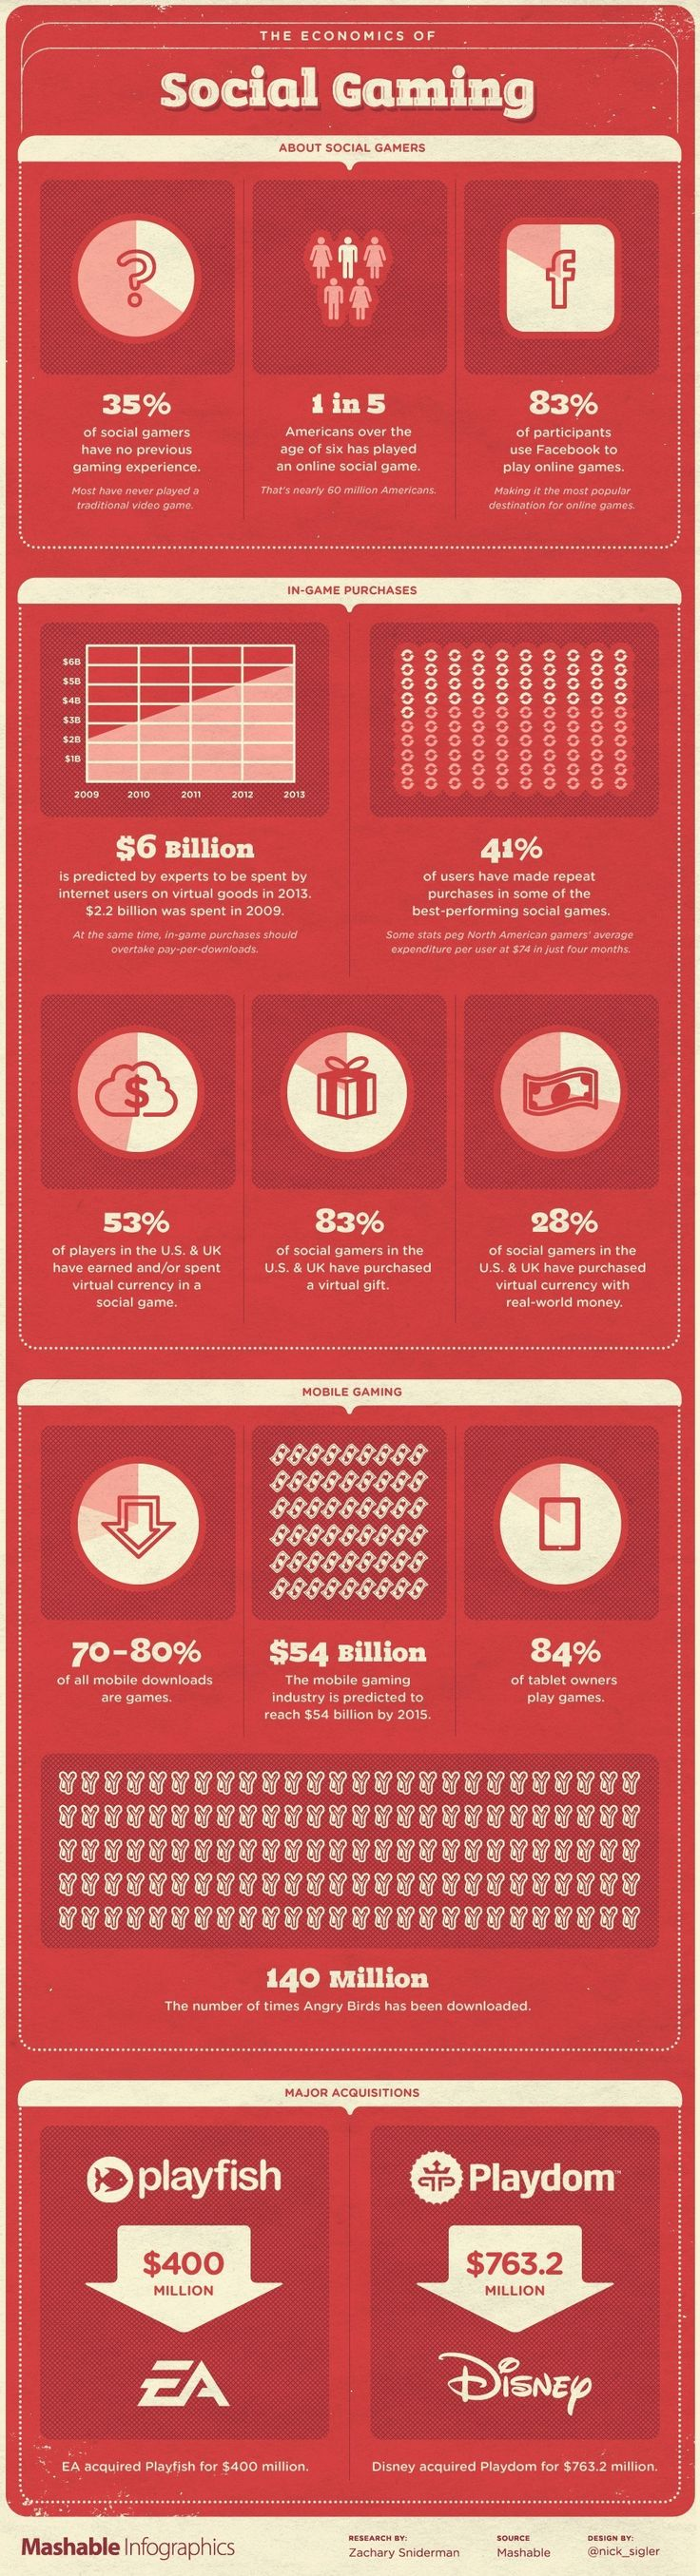 mashable_infographic_economics-social-gaming(1)